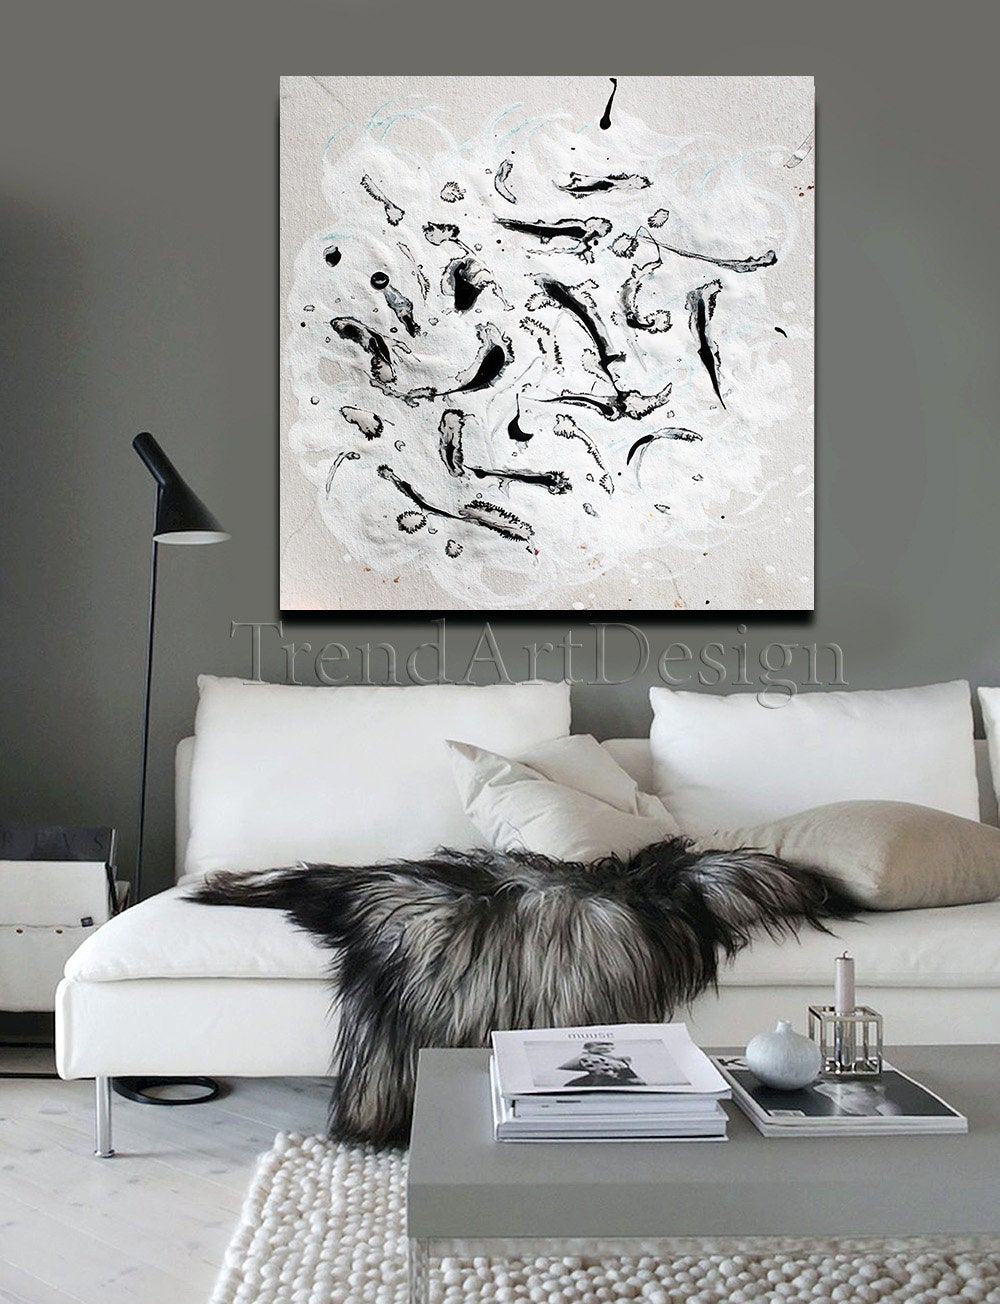 40 Black White Painting Abstract Wall Art Canvas Print Minimalist Art For Modern Living Room Office Trend Wall Decor Minimalist Art Abstract Wall Art White Painting